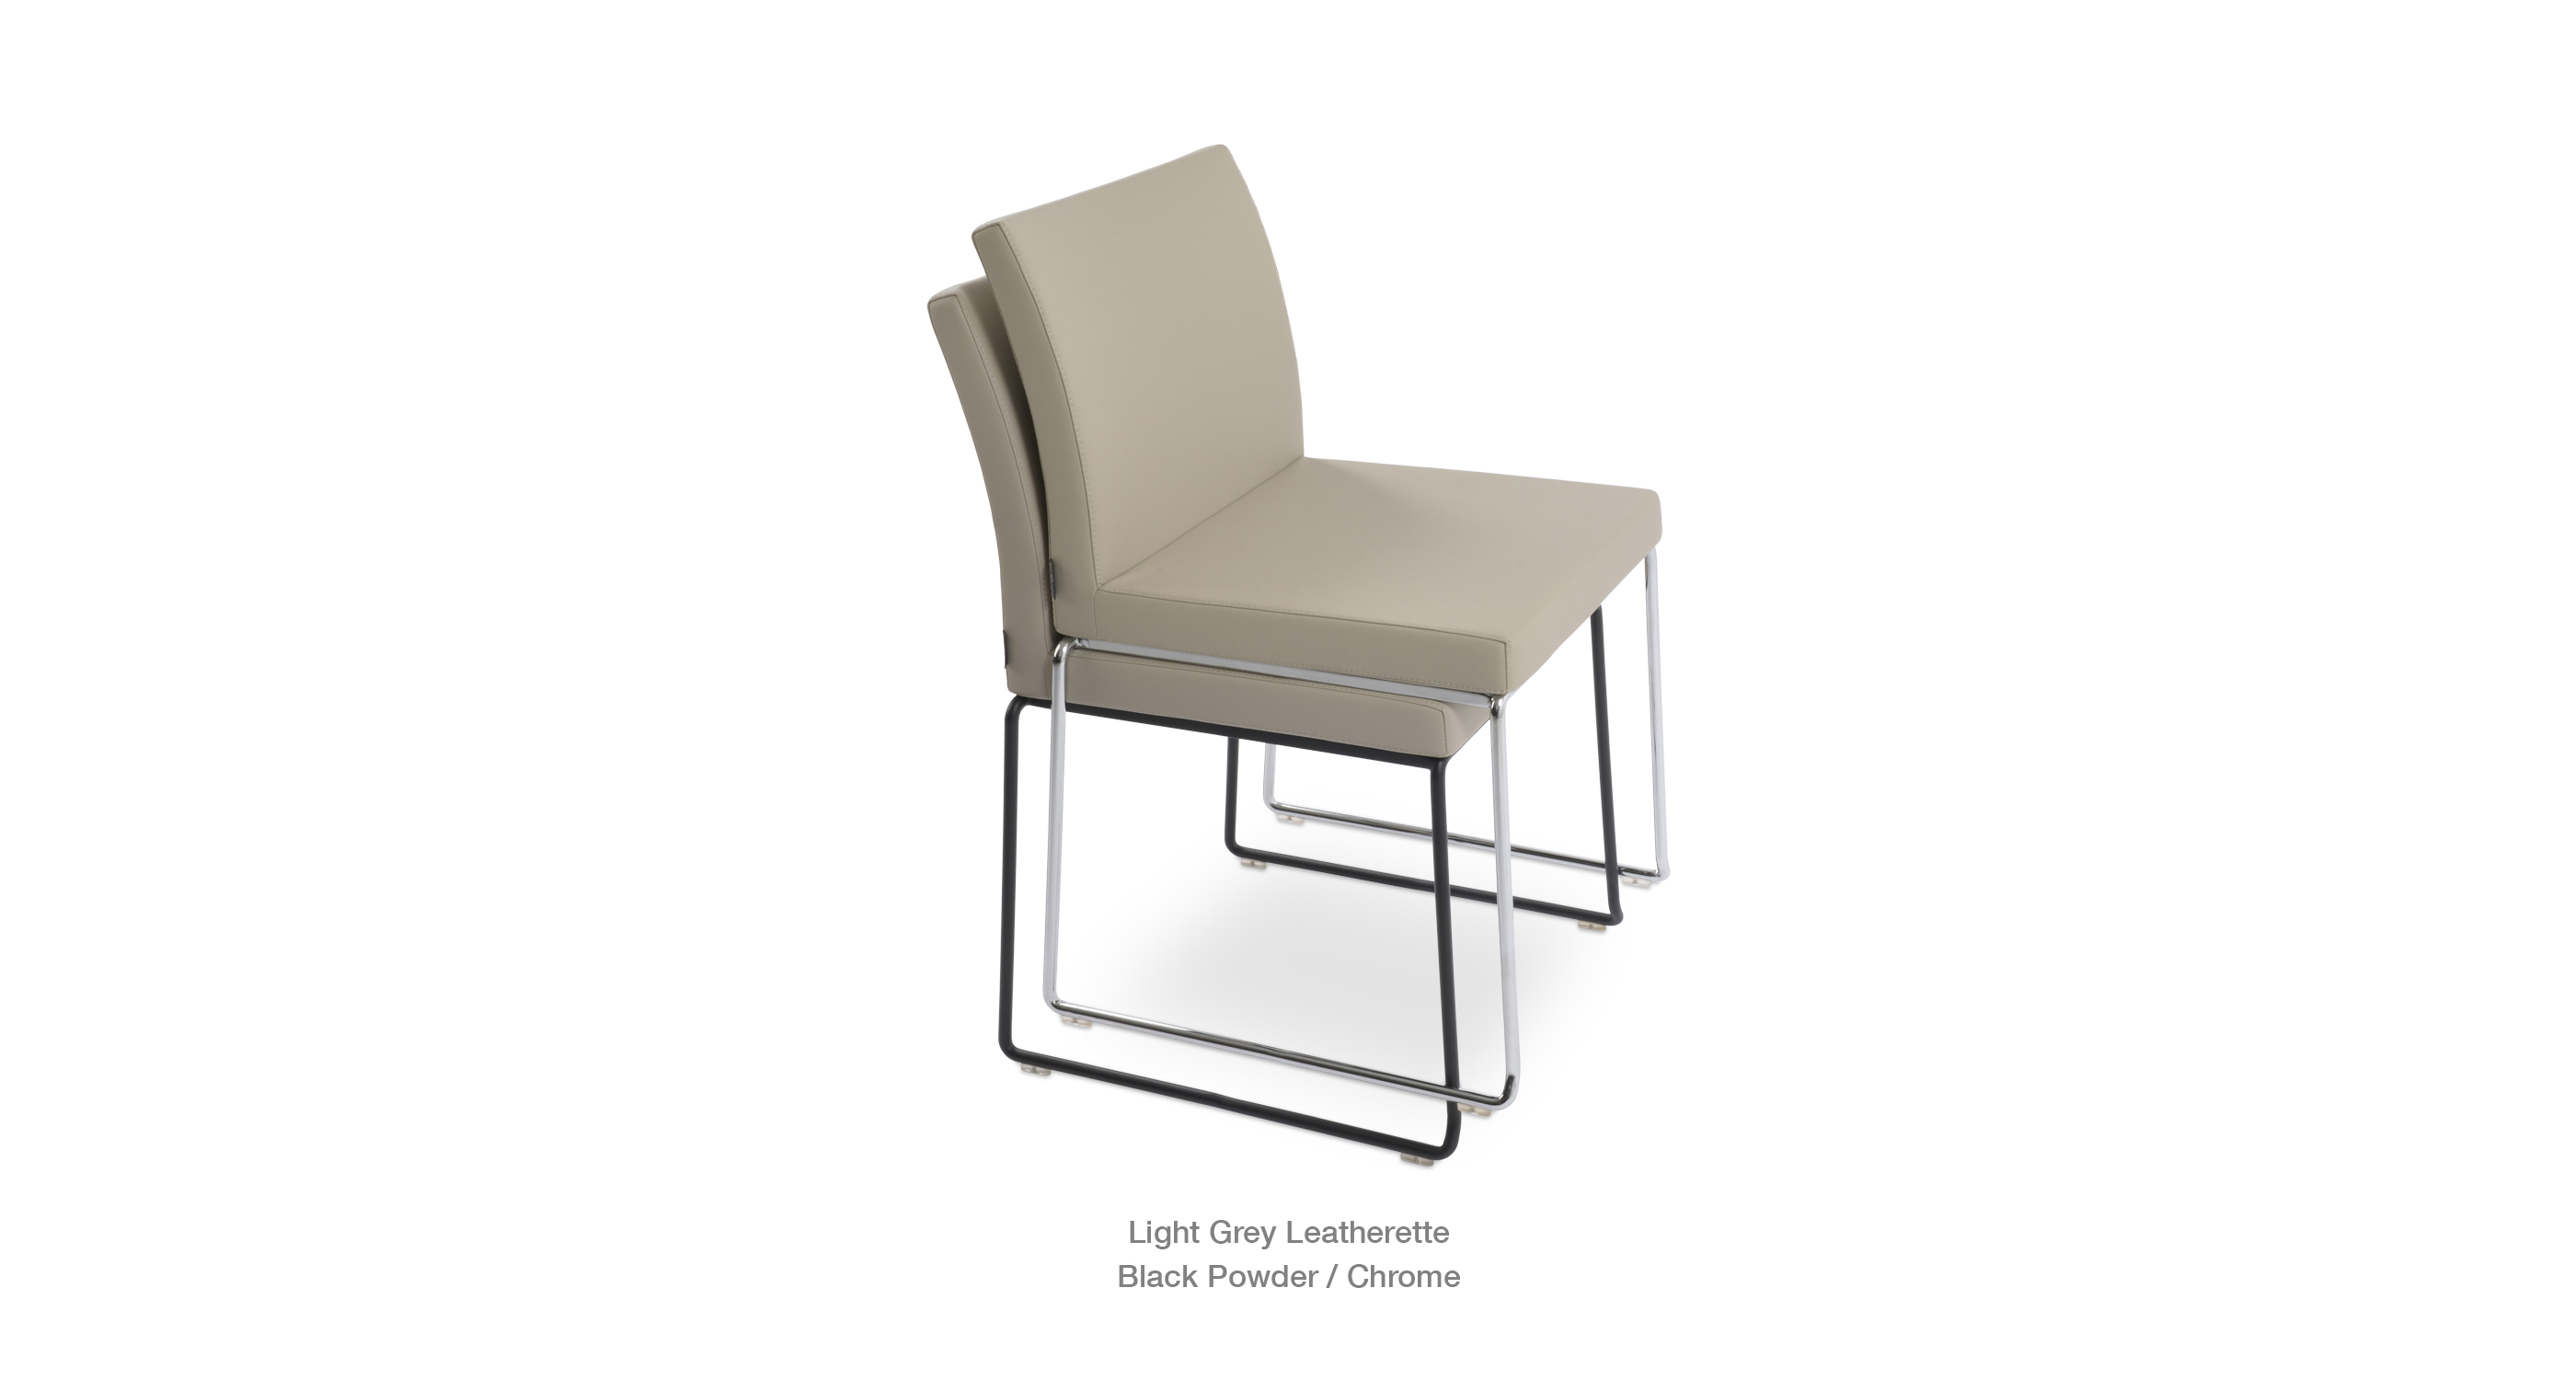 Aria Stackable Light Grey Leatherette Chrome Black